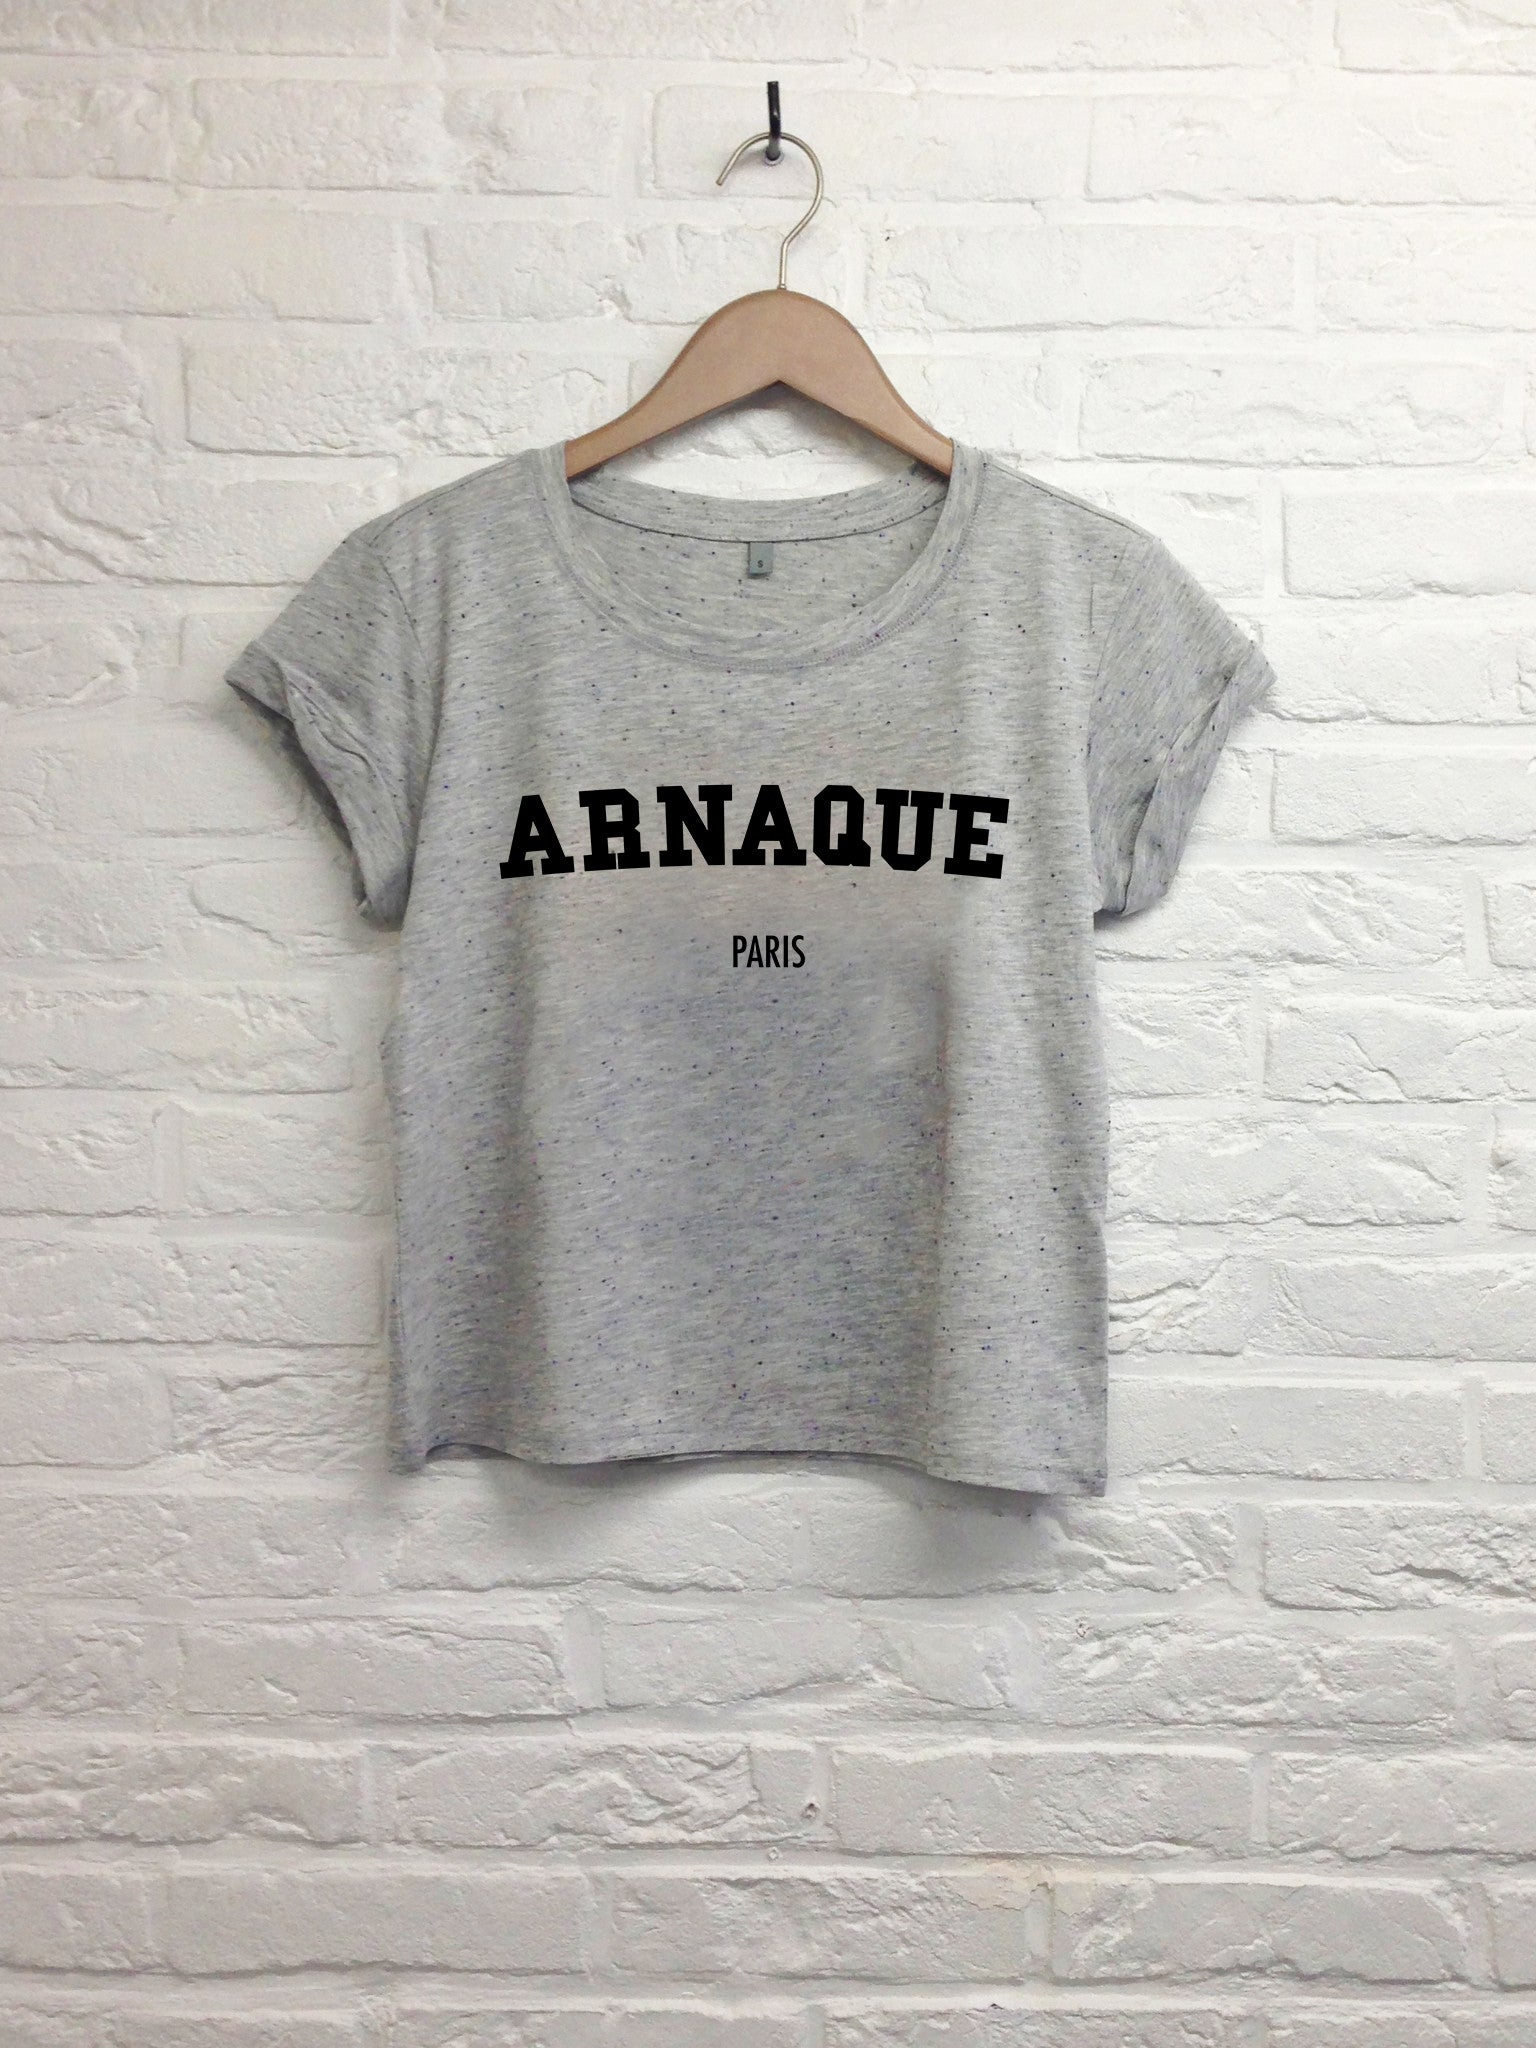 Arnaque Paris - Crop Top-T shirt-Atelier Amelot